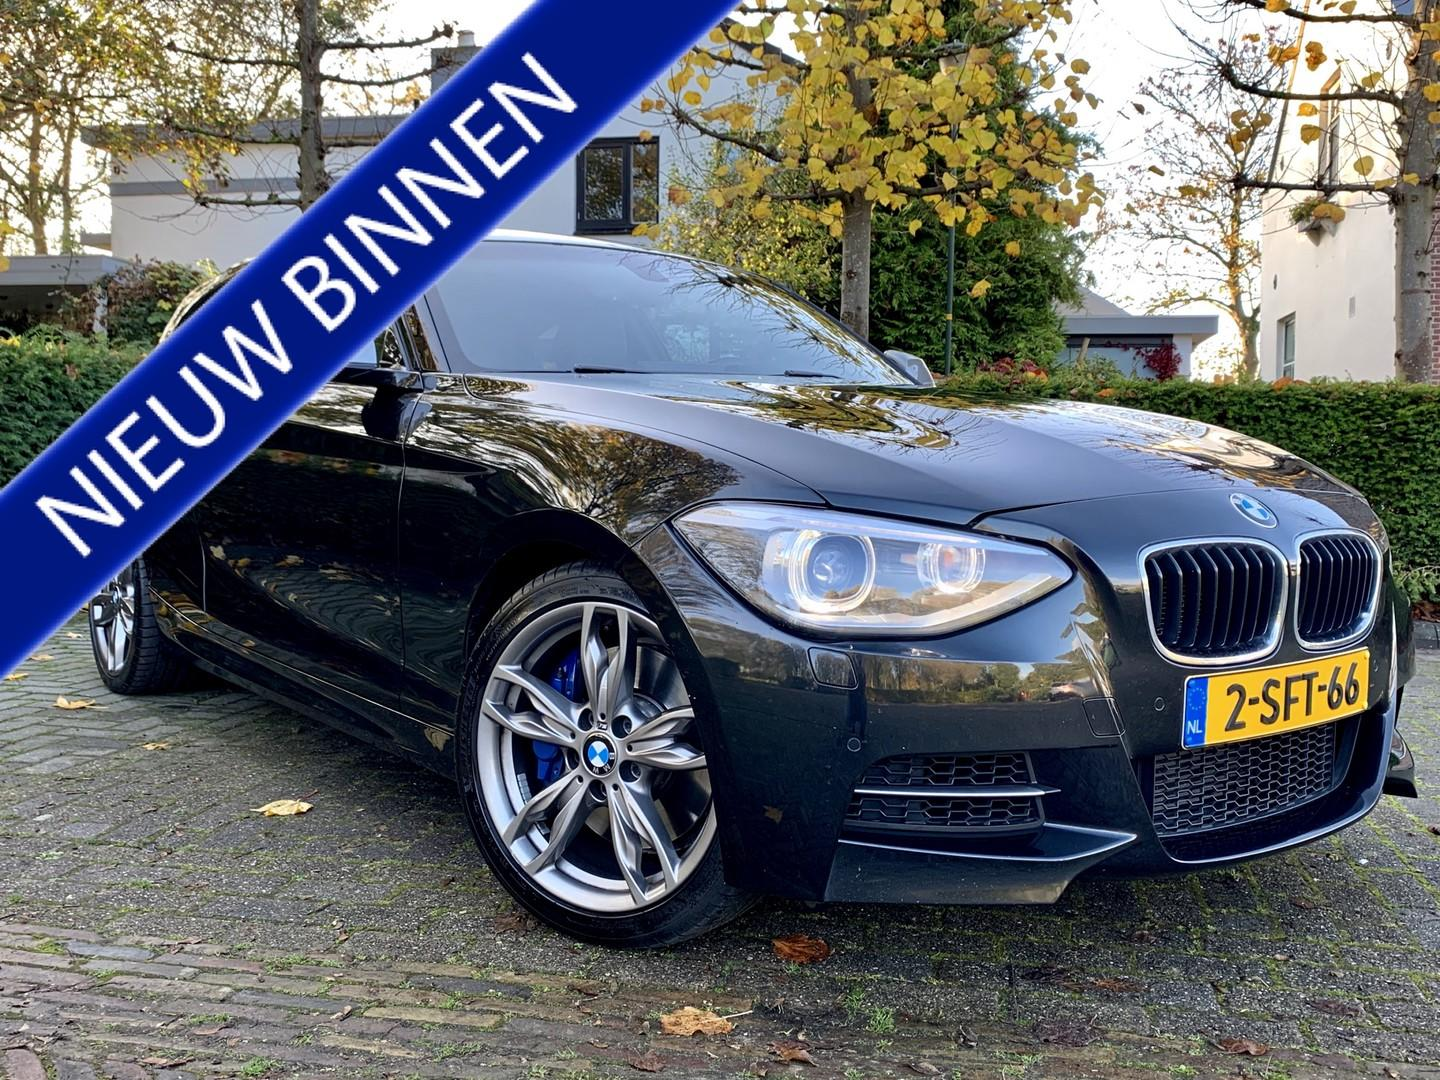 Bmw 1 serie M135i high executive automaat, navi, leer, cruise, xenon - incl. 3 mnd garantie!